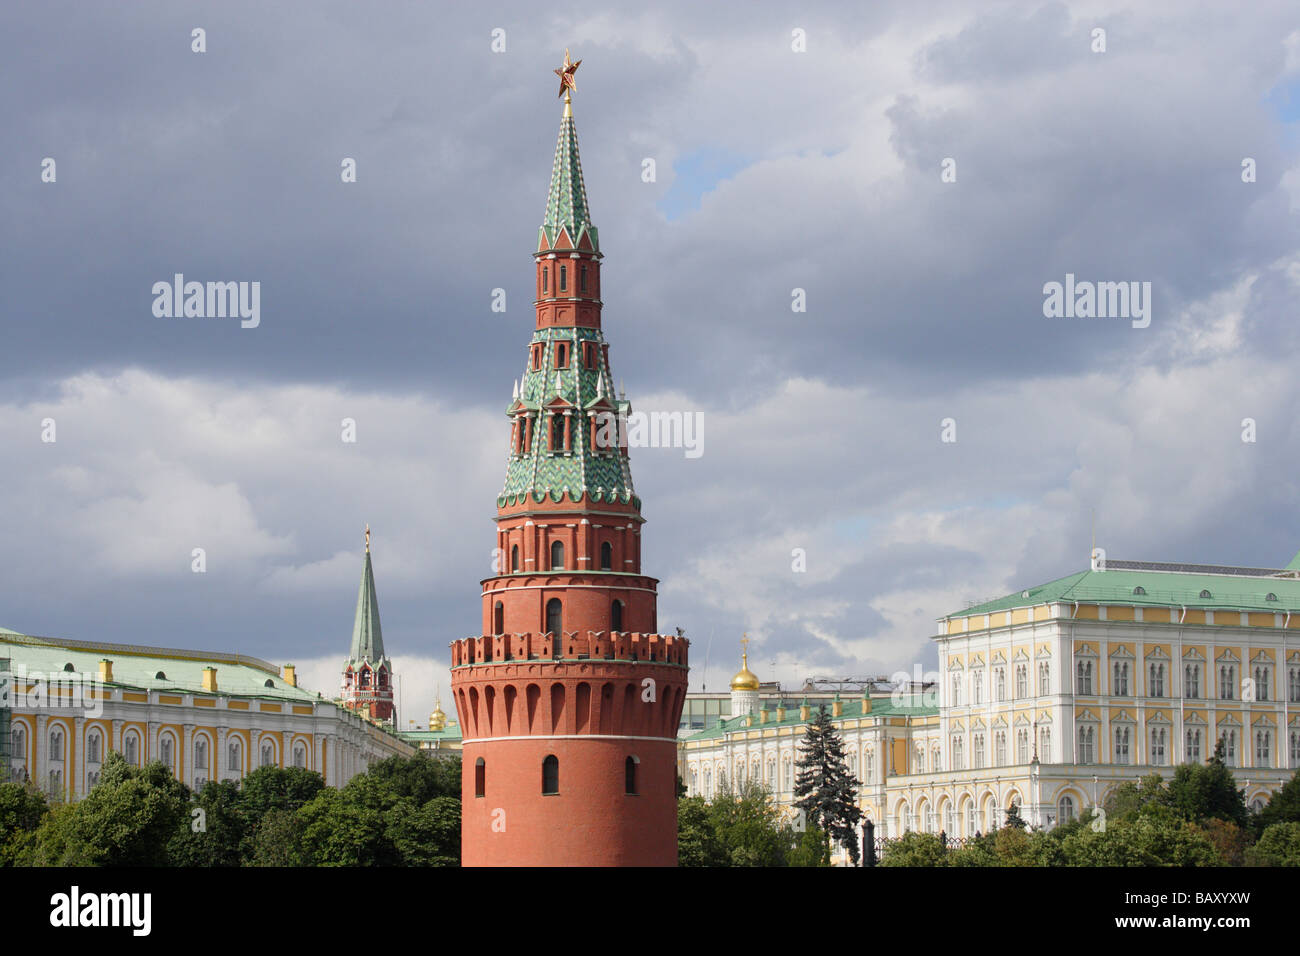 The Kremlin, the Arsenal building on the left and the red Vodovzvodnaya watertower, Moscow Kremlin, Moscow, Russia - Stock Image